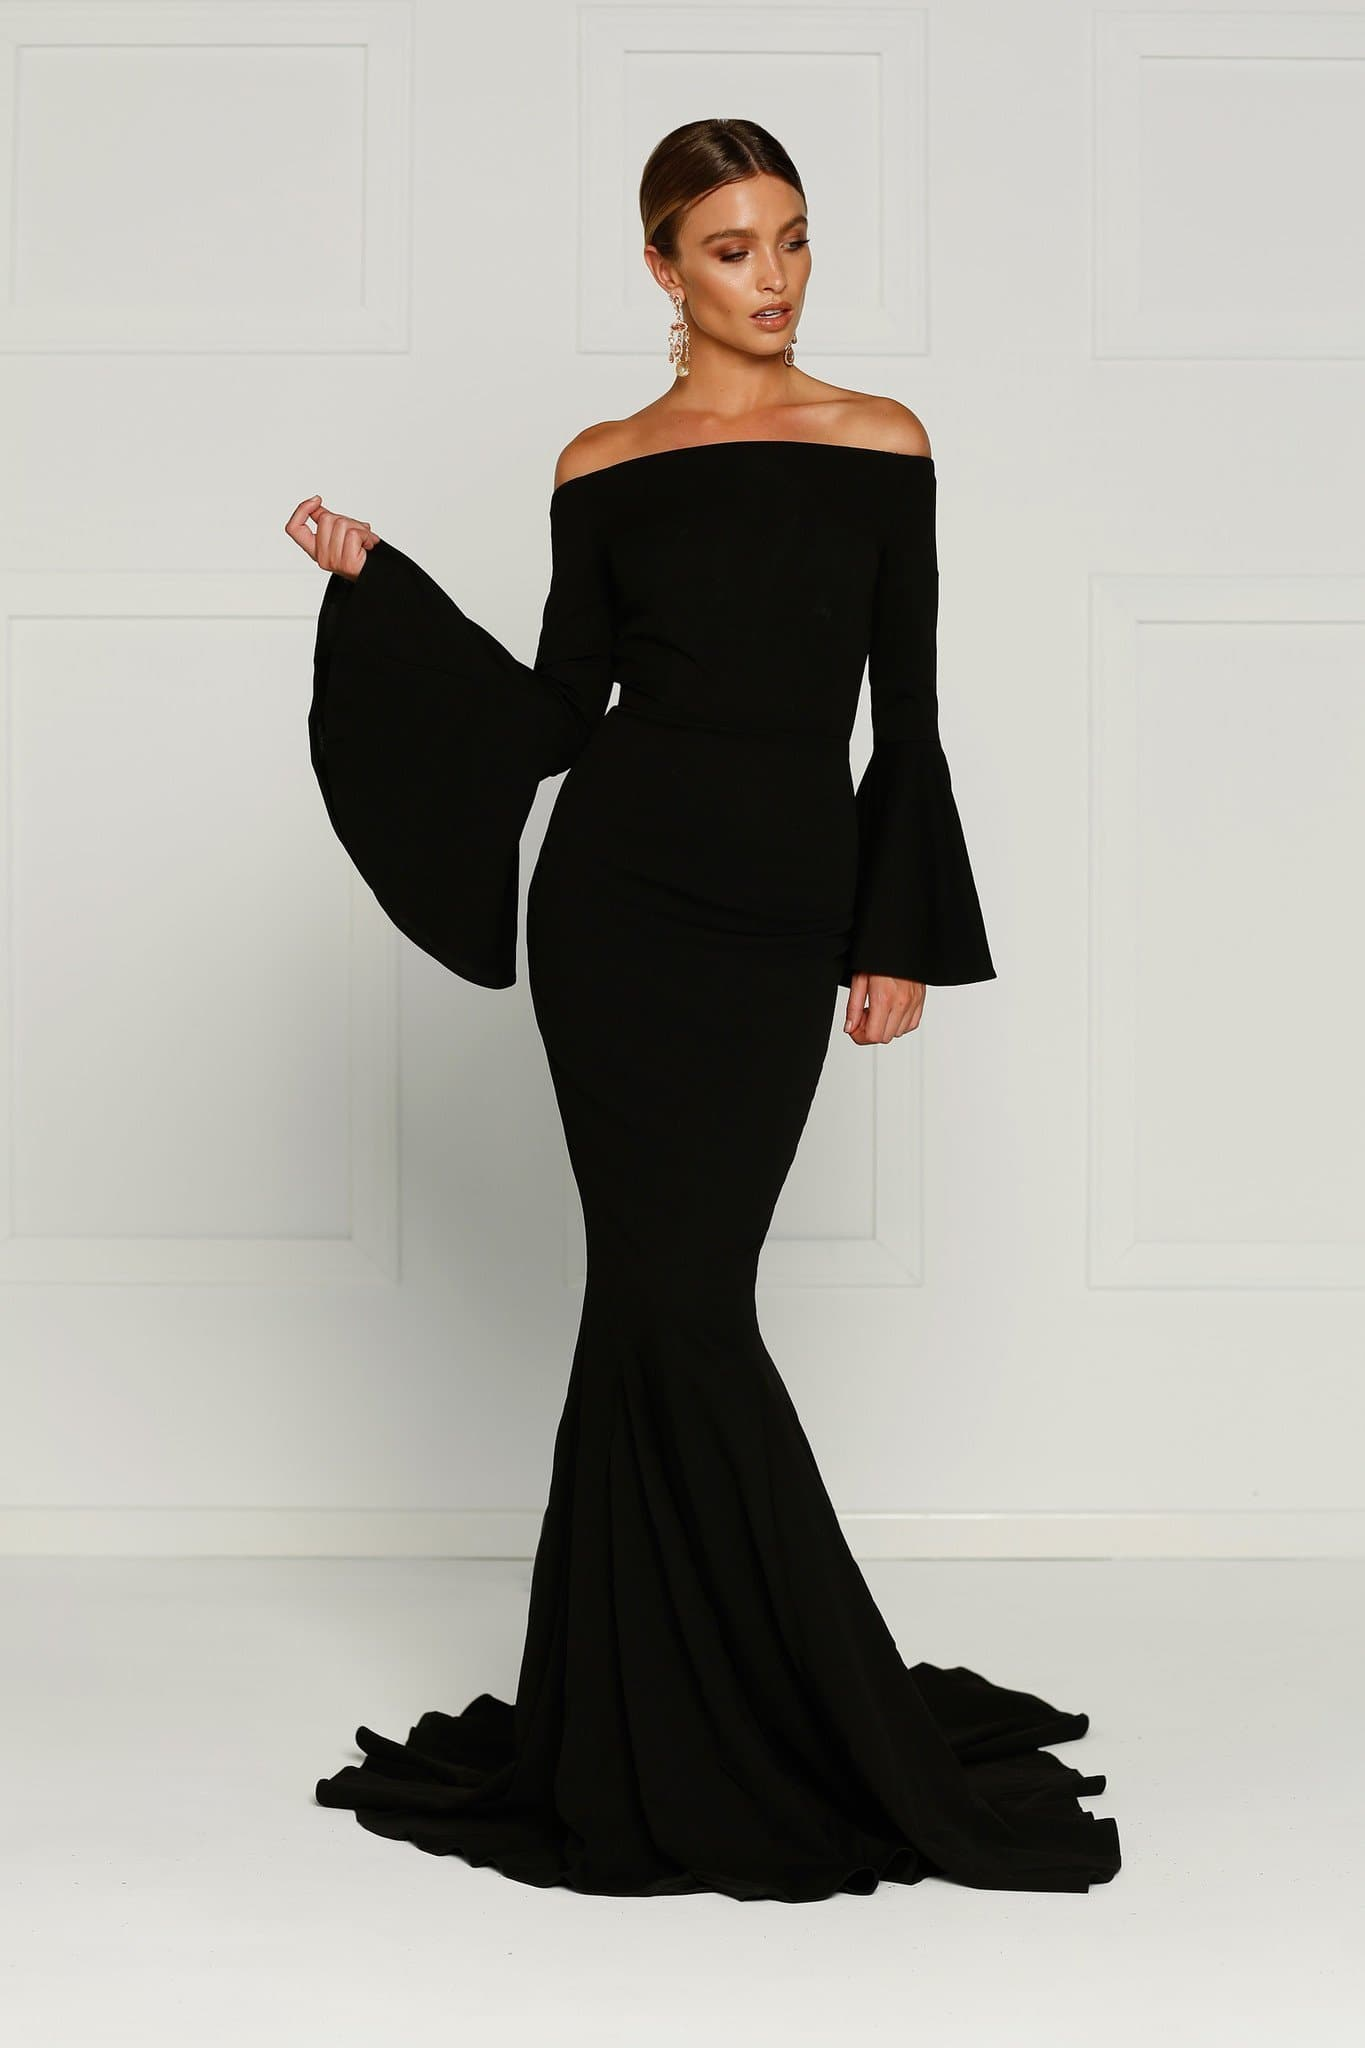 Amore Gown - Black Mermaid Dress Made From Crepe Stretch Fabric